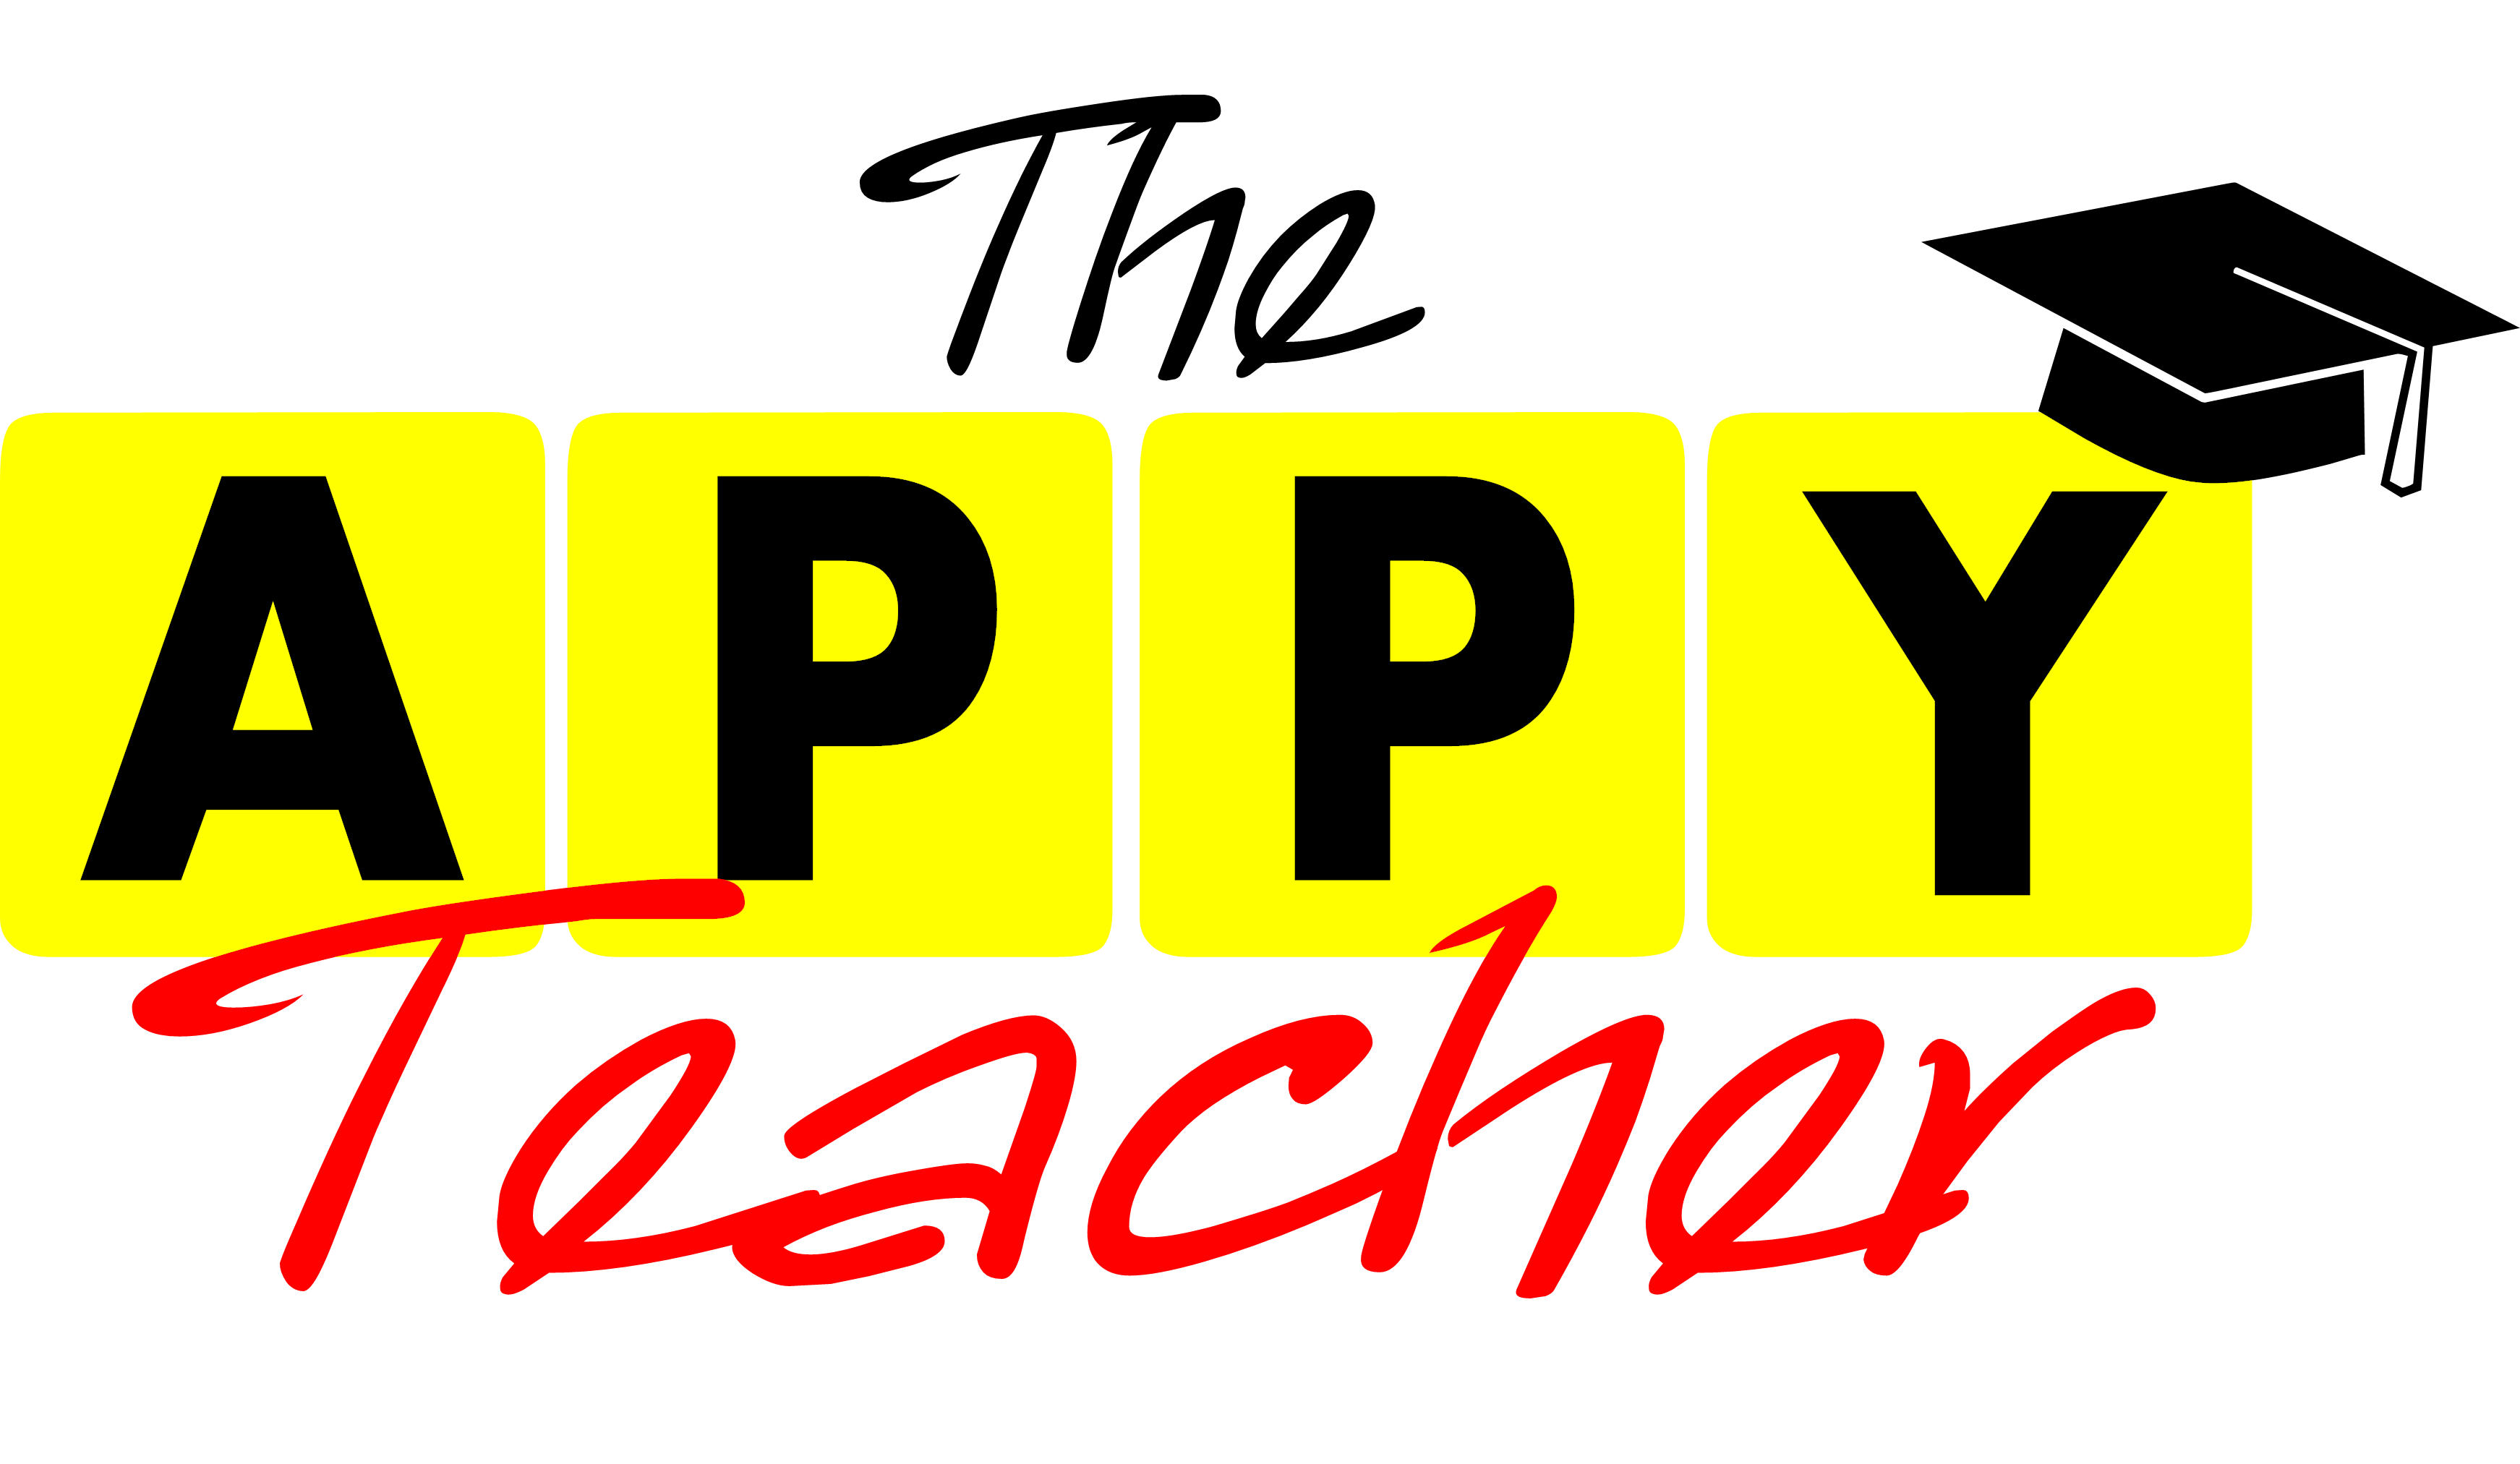 The Appy Teacher